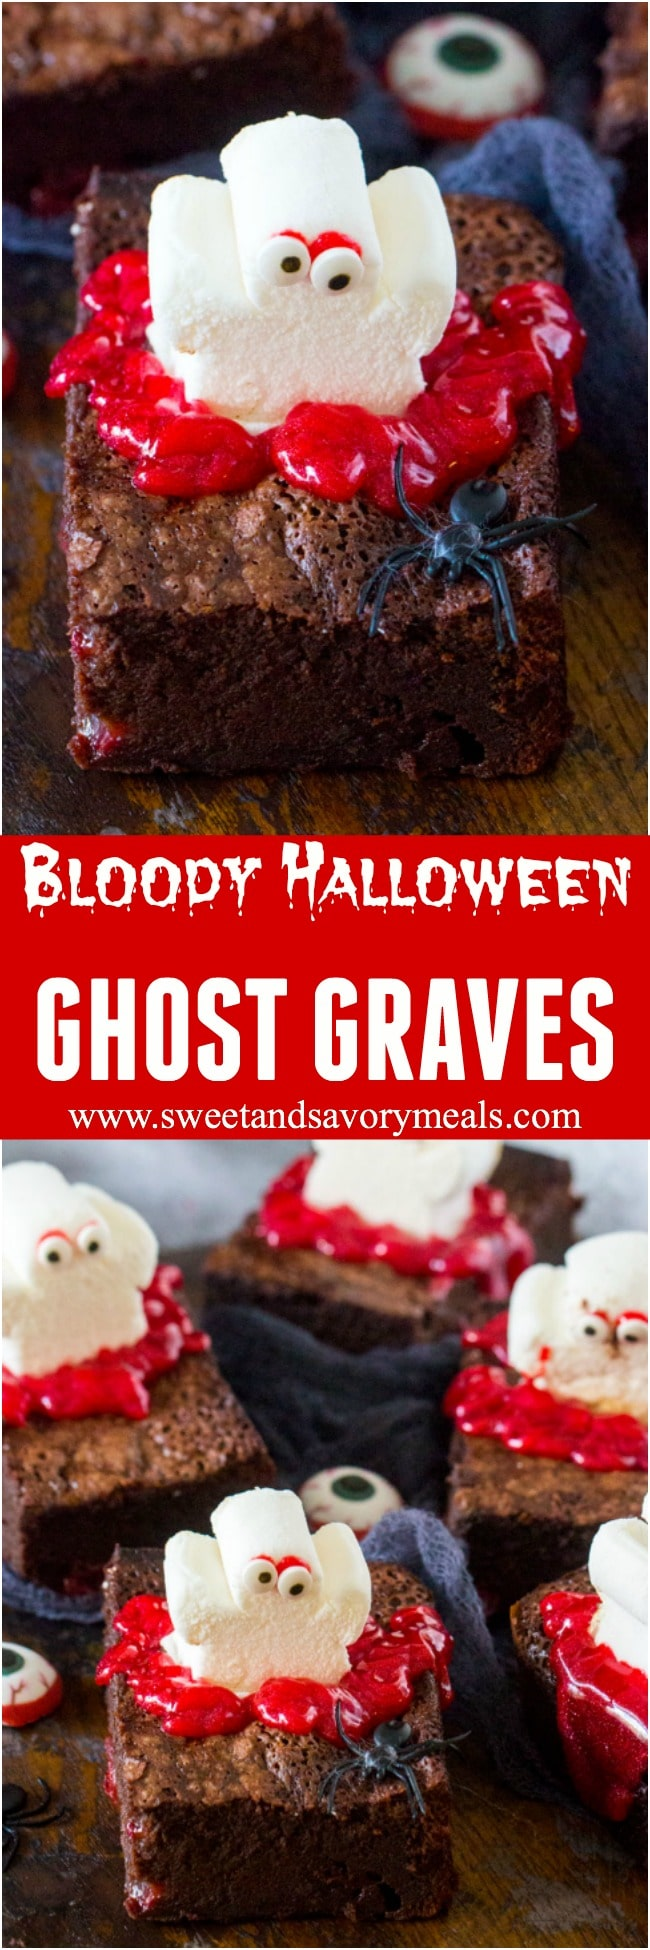 Bloody Halloween Desserts like these Brownie Ghost Graves, are a fun and easy way to take your Halloween treats to a new scary, delicious and fun level!